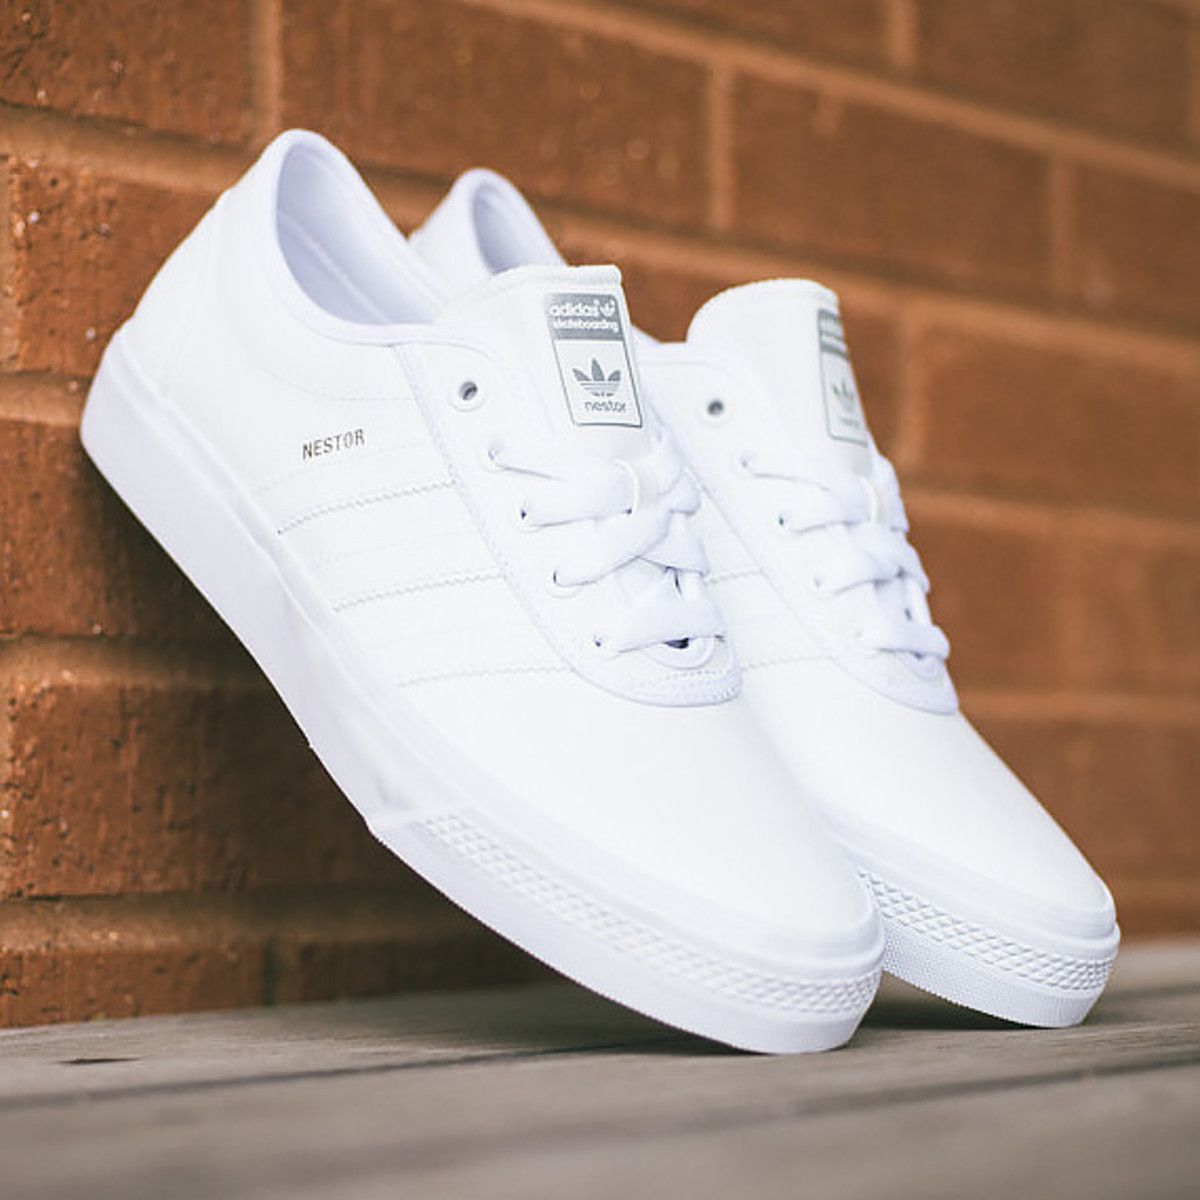 "reputable site e1658 f2bdb adidas Skateboarding adi-Ease Nestor - ""All White"" - Freshness Mag"